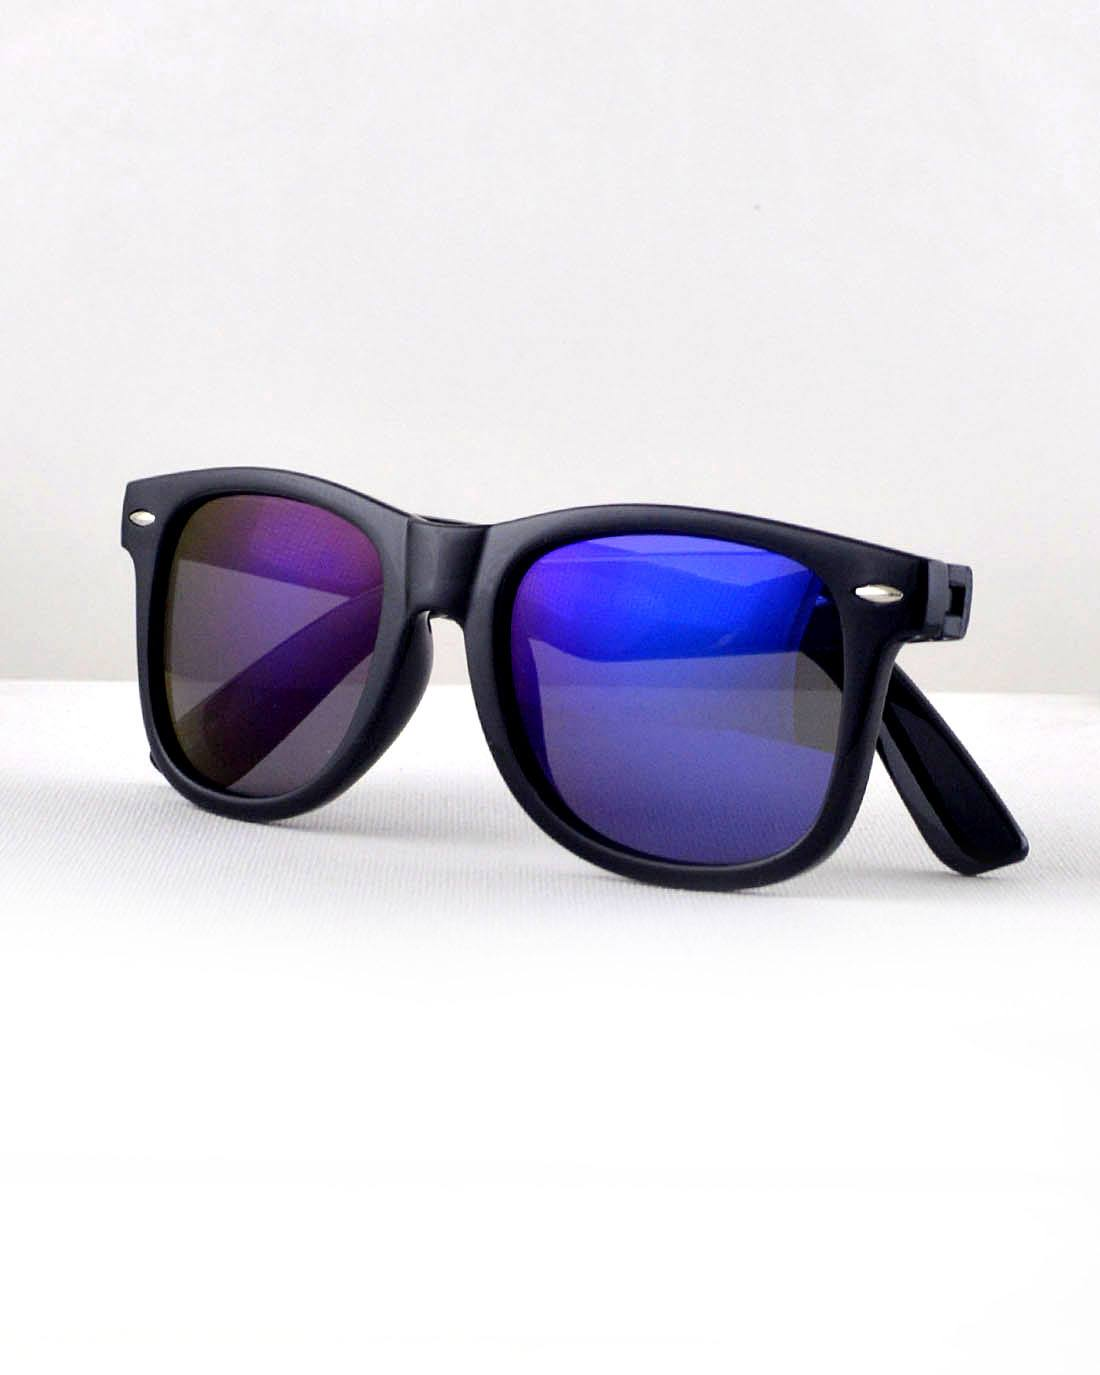 Stylish Black Frame Wayfarer Sunglasses-Purple-MY UPSCALE STORE